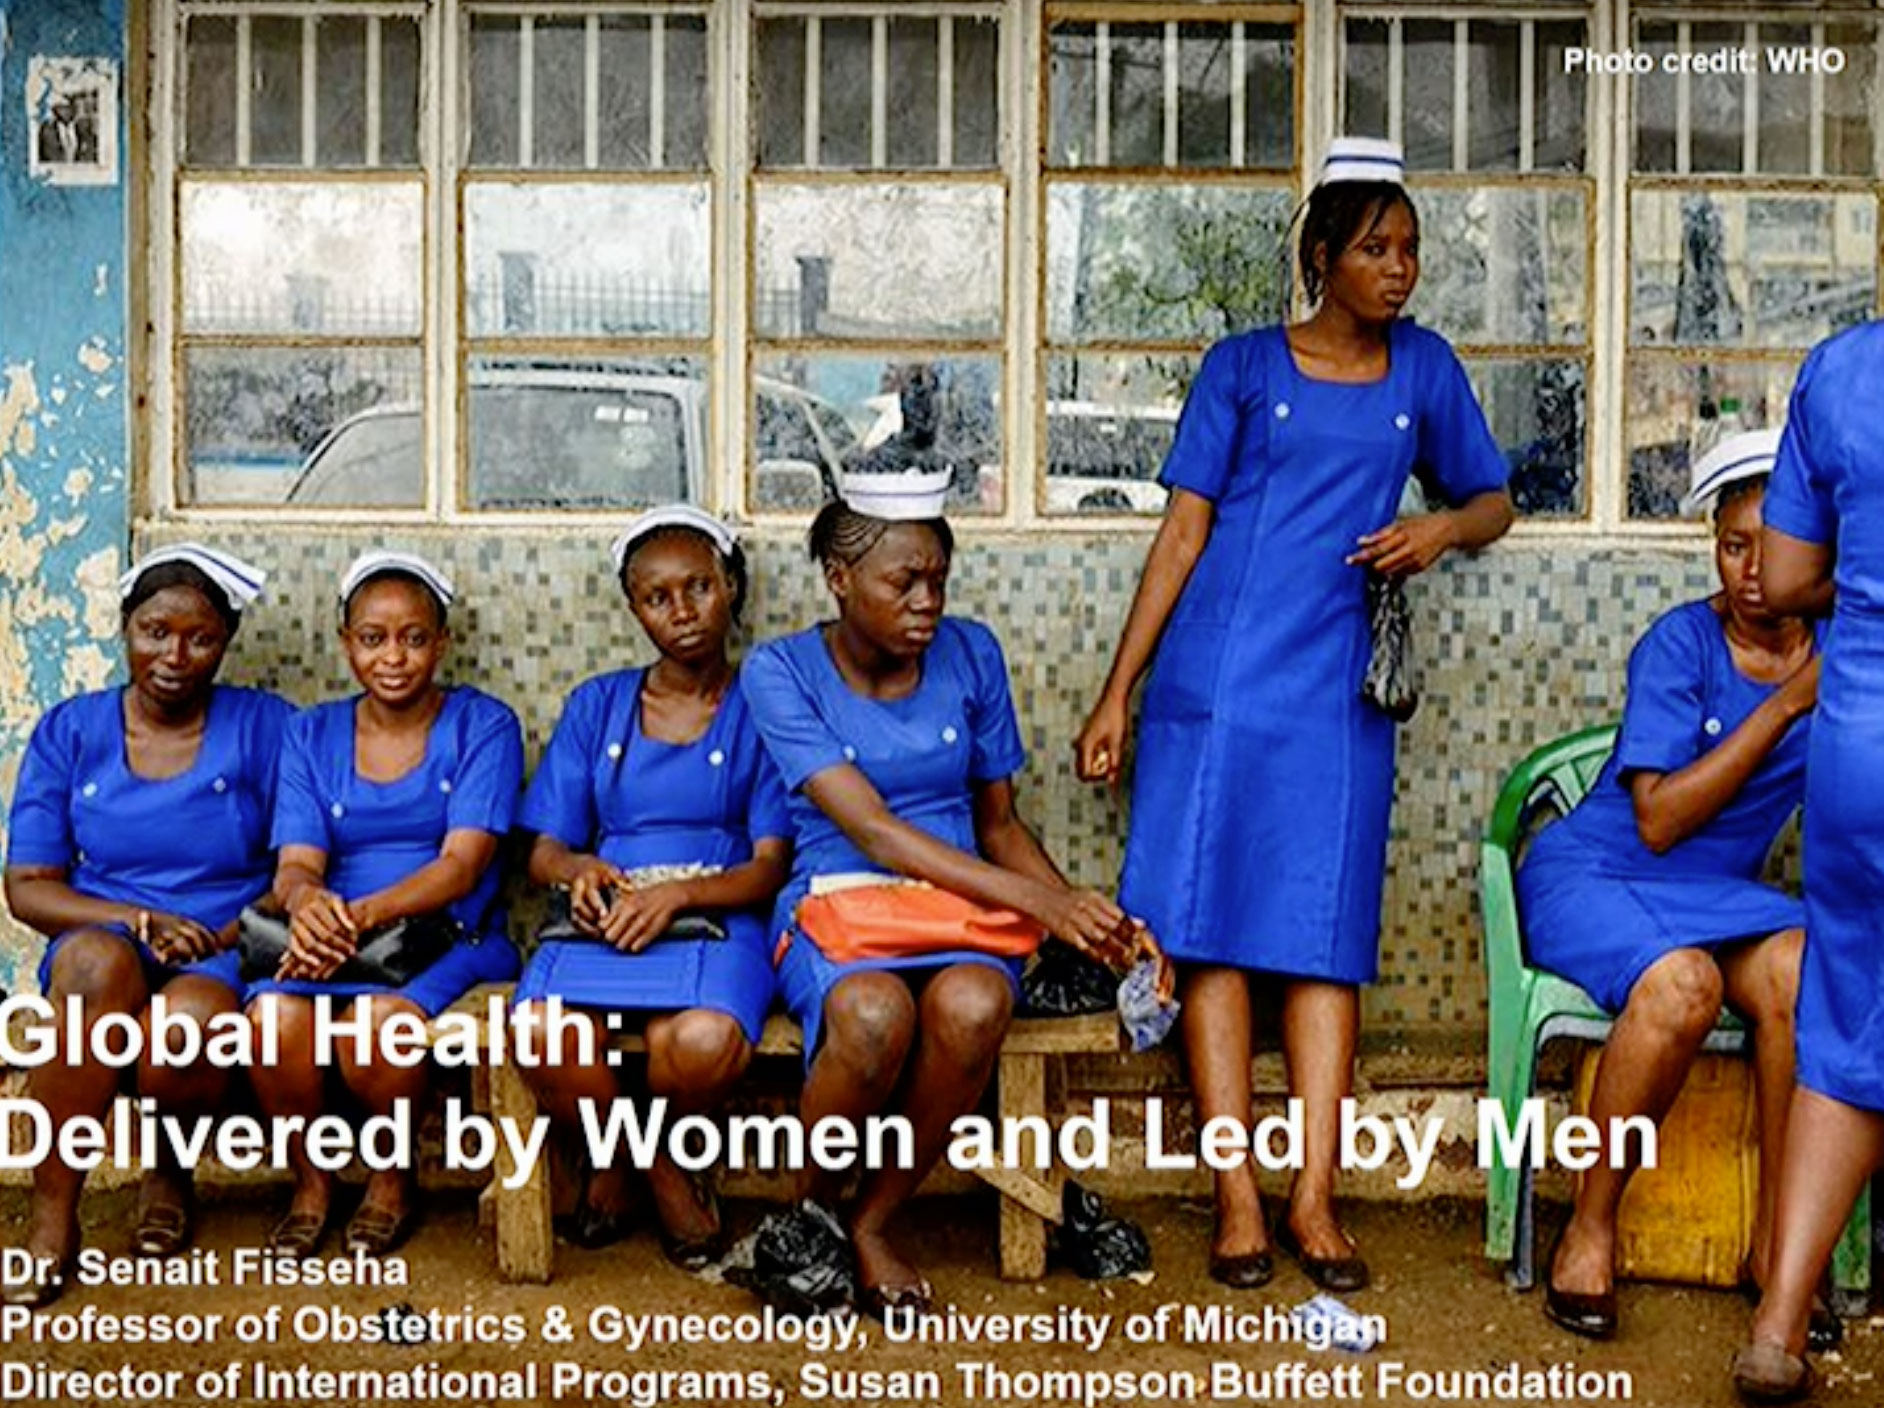 Picture from Global Health: Delivered by Women & Led by Men video